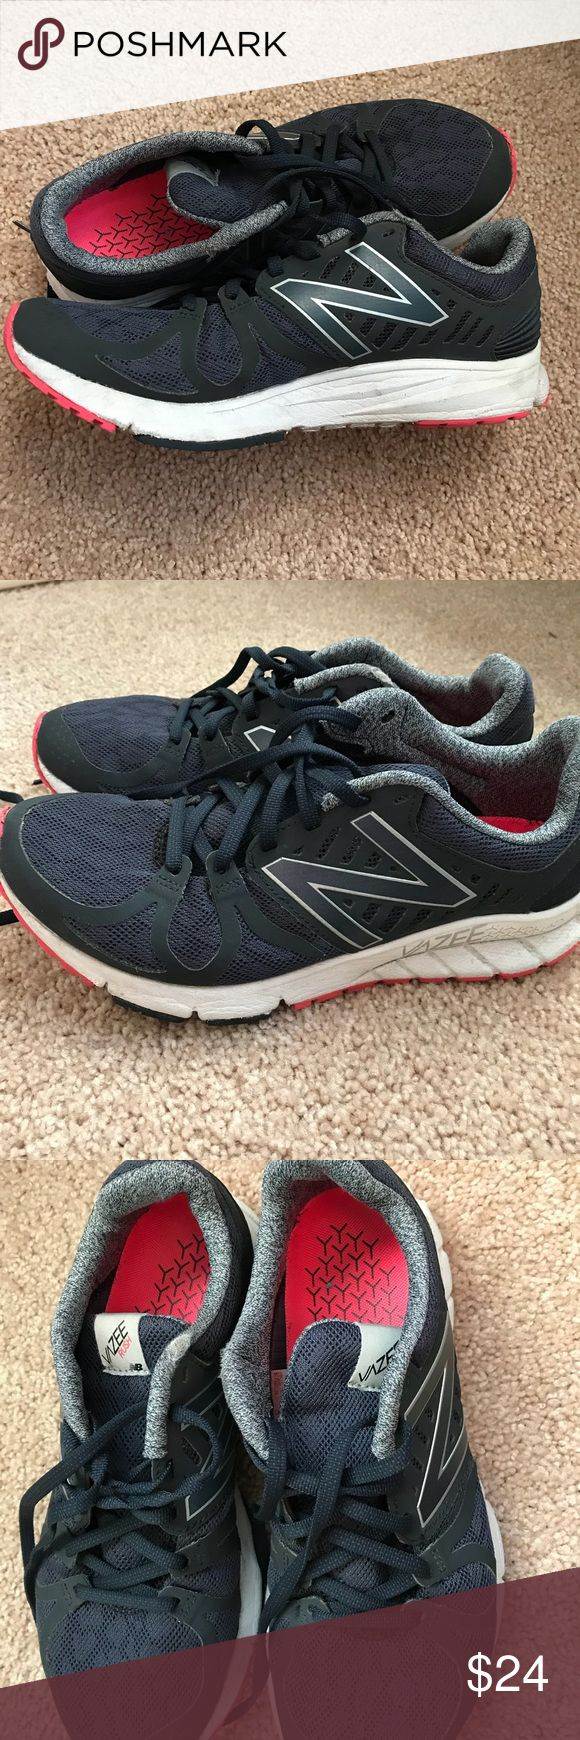 New Balance Vazee Rush women's sneakers size 8 Comfortable sneakers for running, training and fitness. Worn infrequently and in great condition! Fits a size 8. Priced reasonably as listed for much more online! New Balance Shoes Athletic Shoes